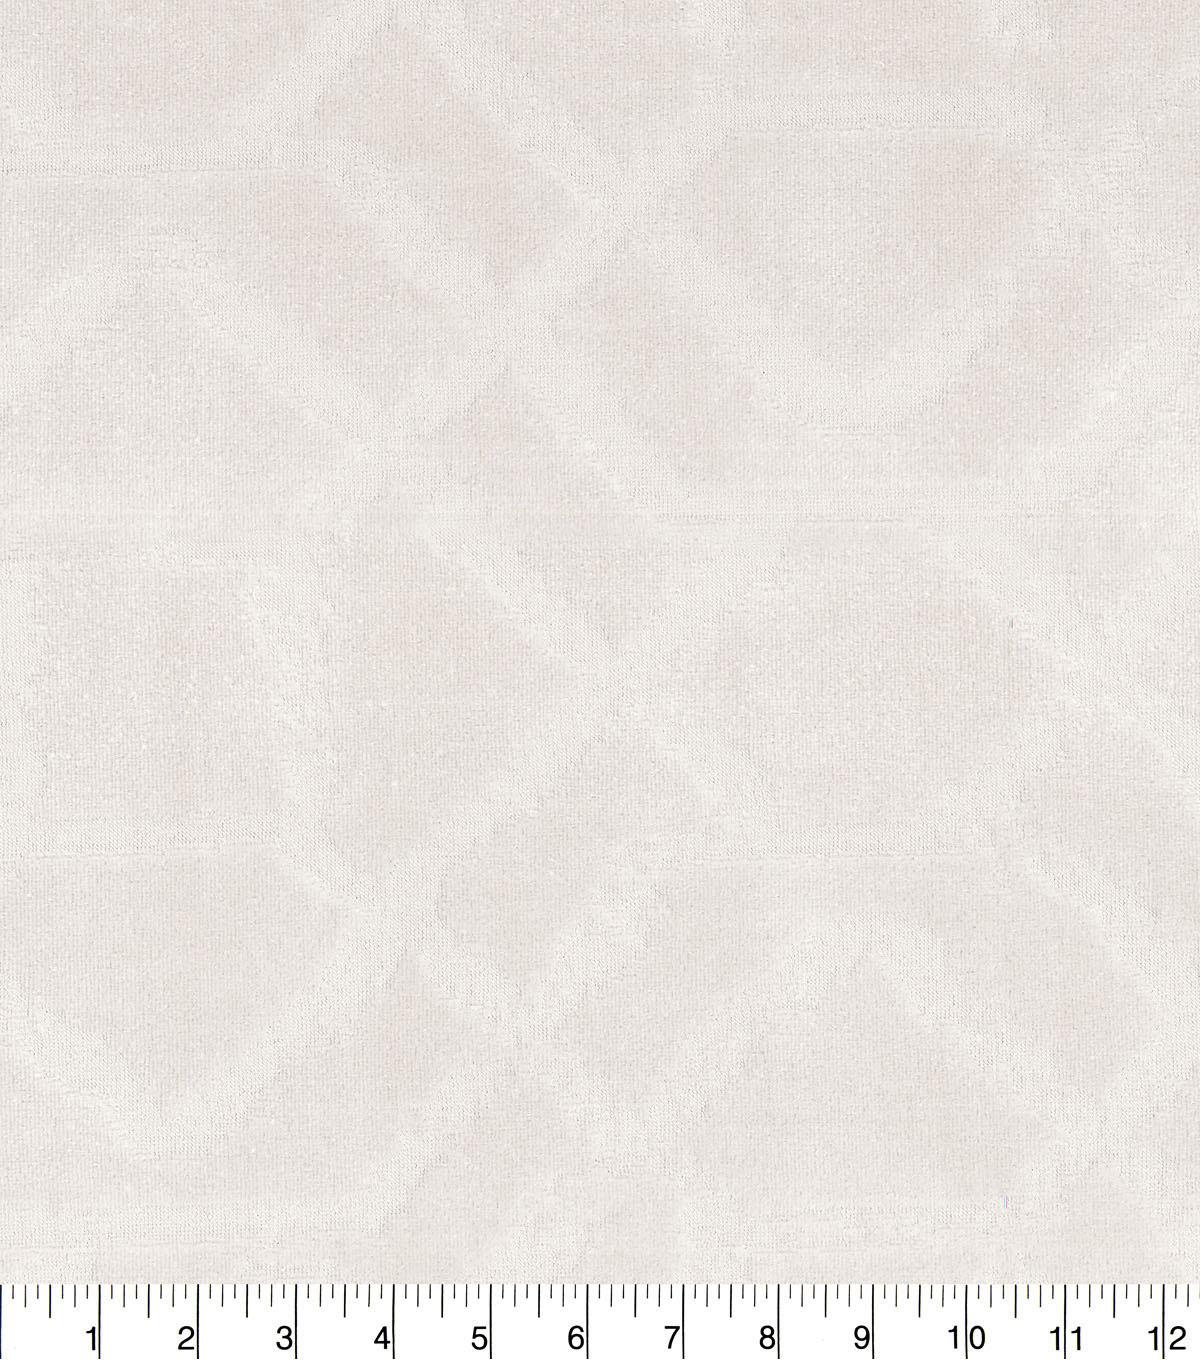 PKL Studio Upholstery Décor Fabric 9\u0022x9\u0022 Swatch-Yulin Alabaster